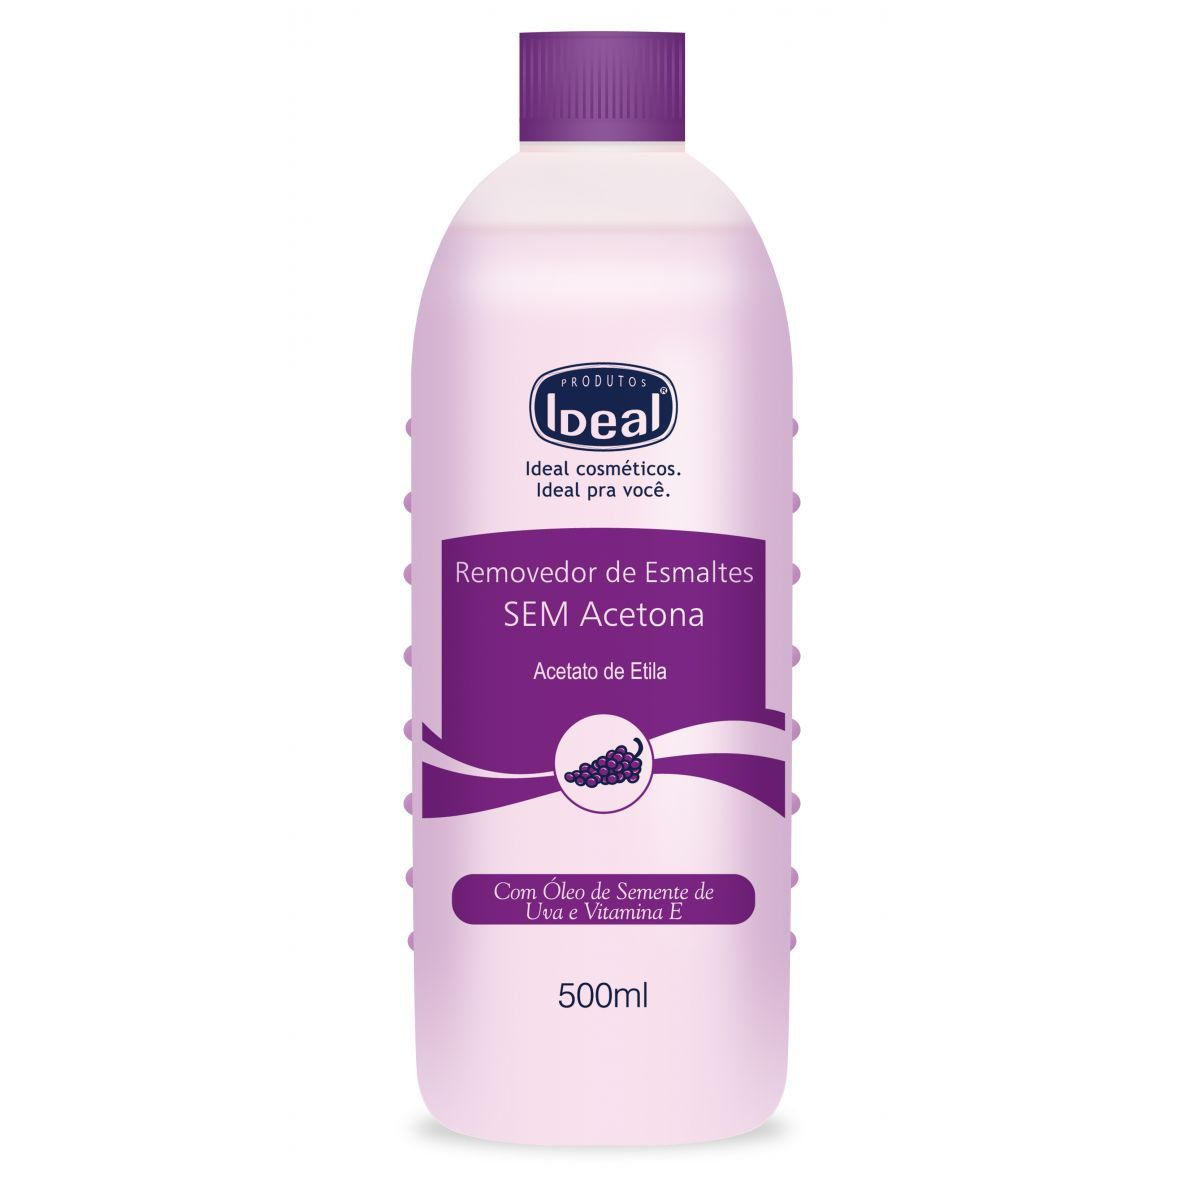 Removedor de Esmaltes Sem Acetona 500ml Ideal